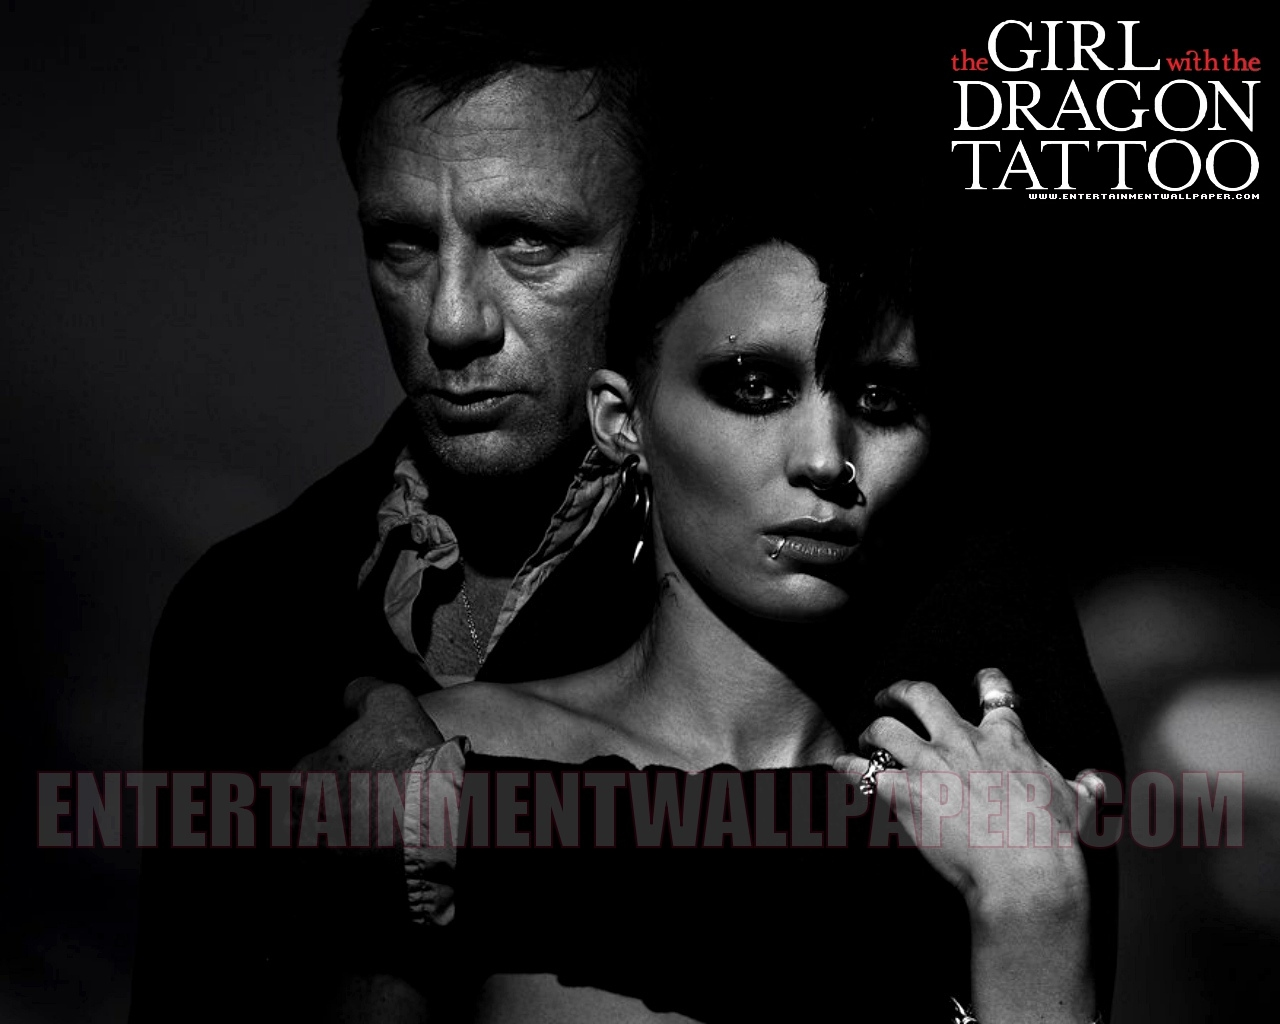 movies-books-writers-comics: THE GIRL WITH THE DRAGON TATTOO